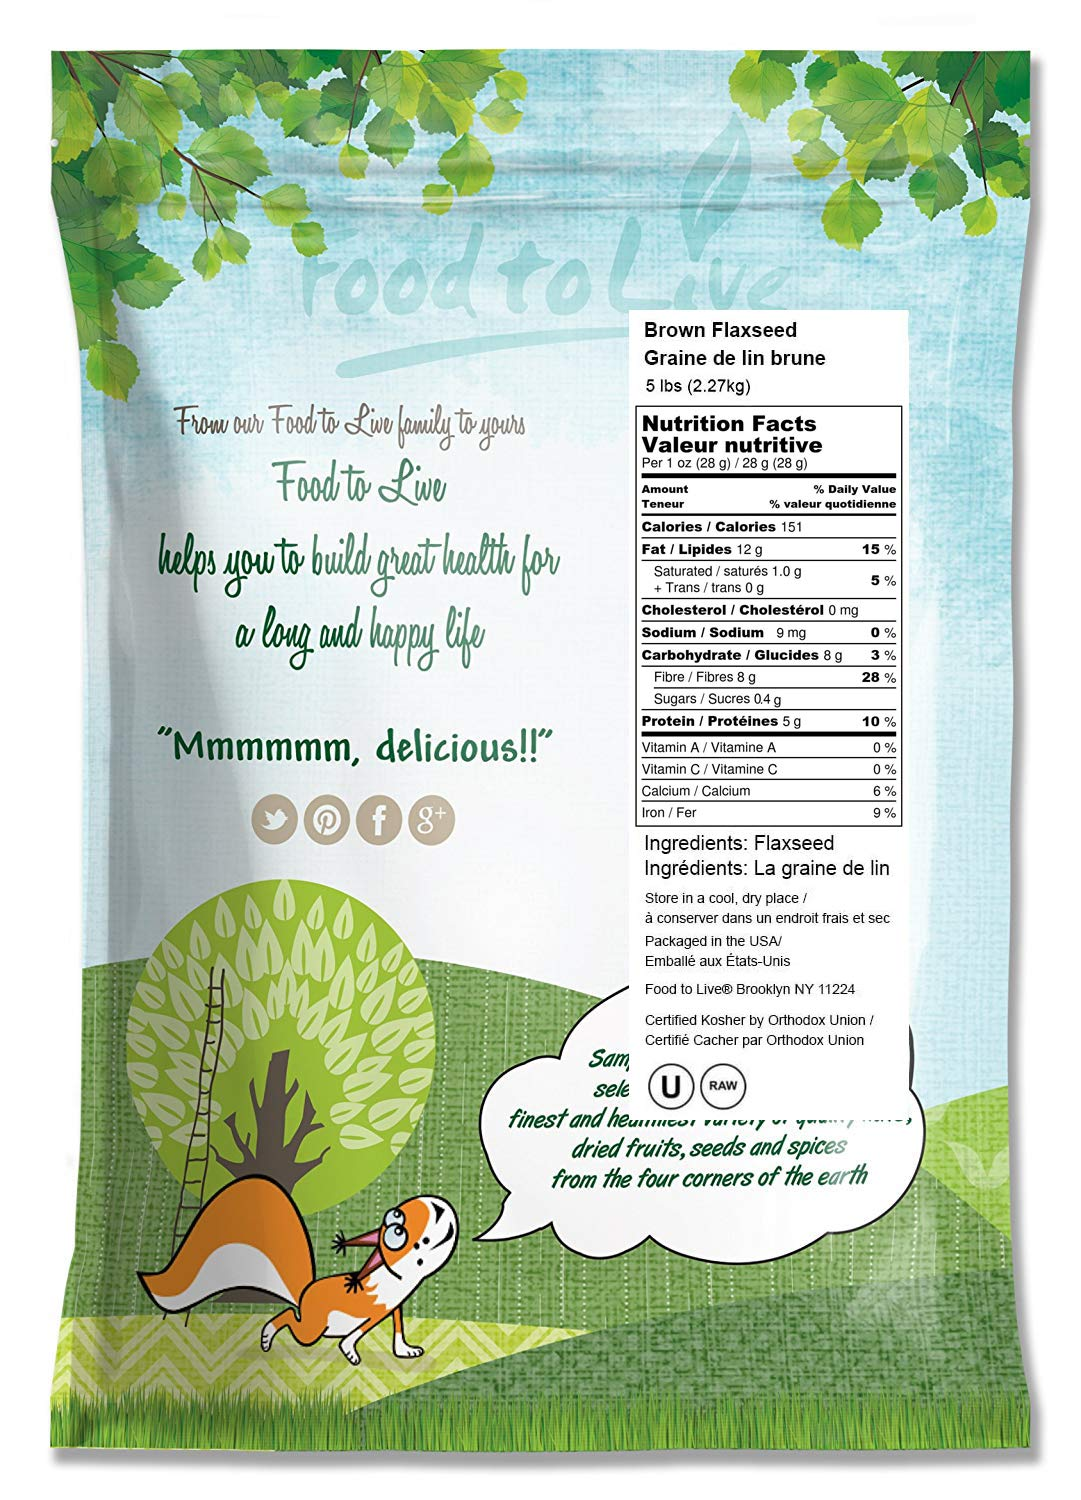 Food To Live Semillas de lino.: Amazon.com: Grocery ...